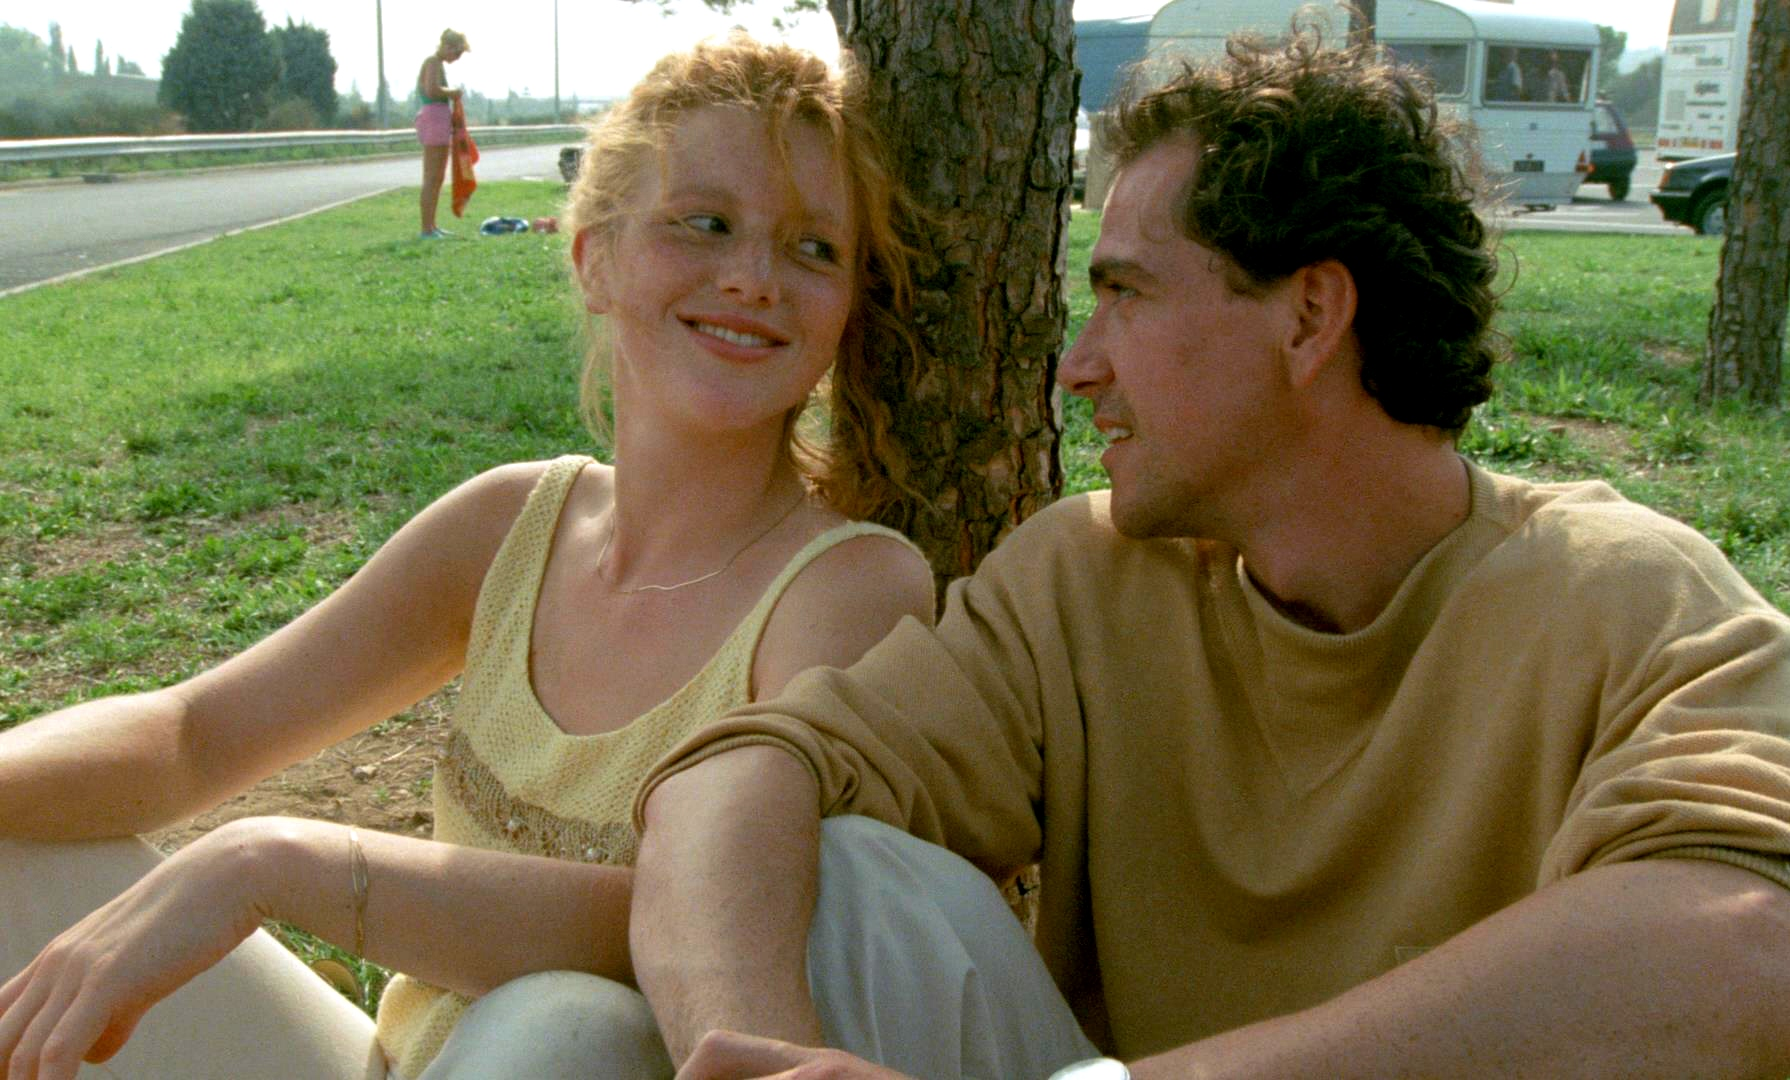 Johanna Ter Steege and Gene Bervoets in a happy moment just before her disappearance in The Vanishing (1988)